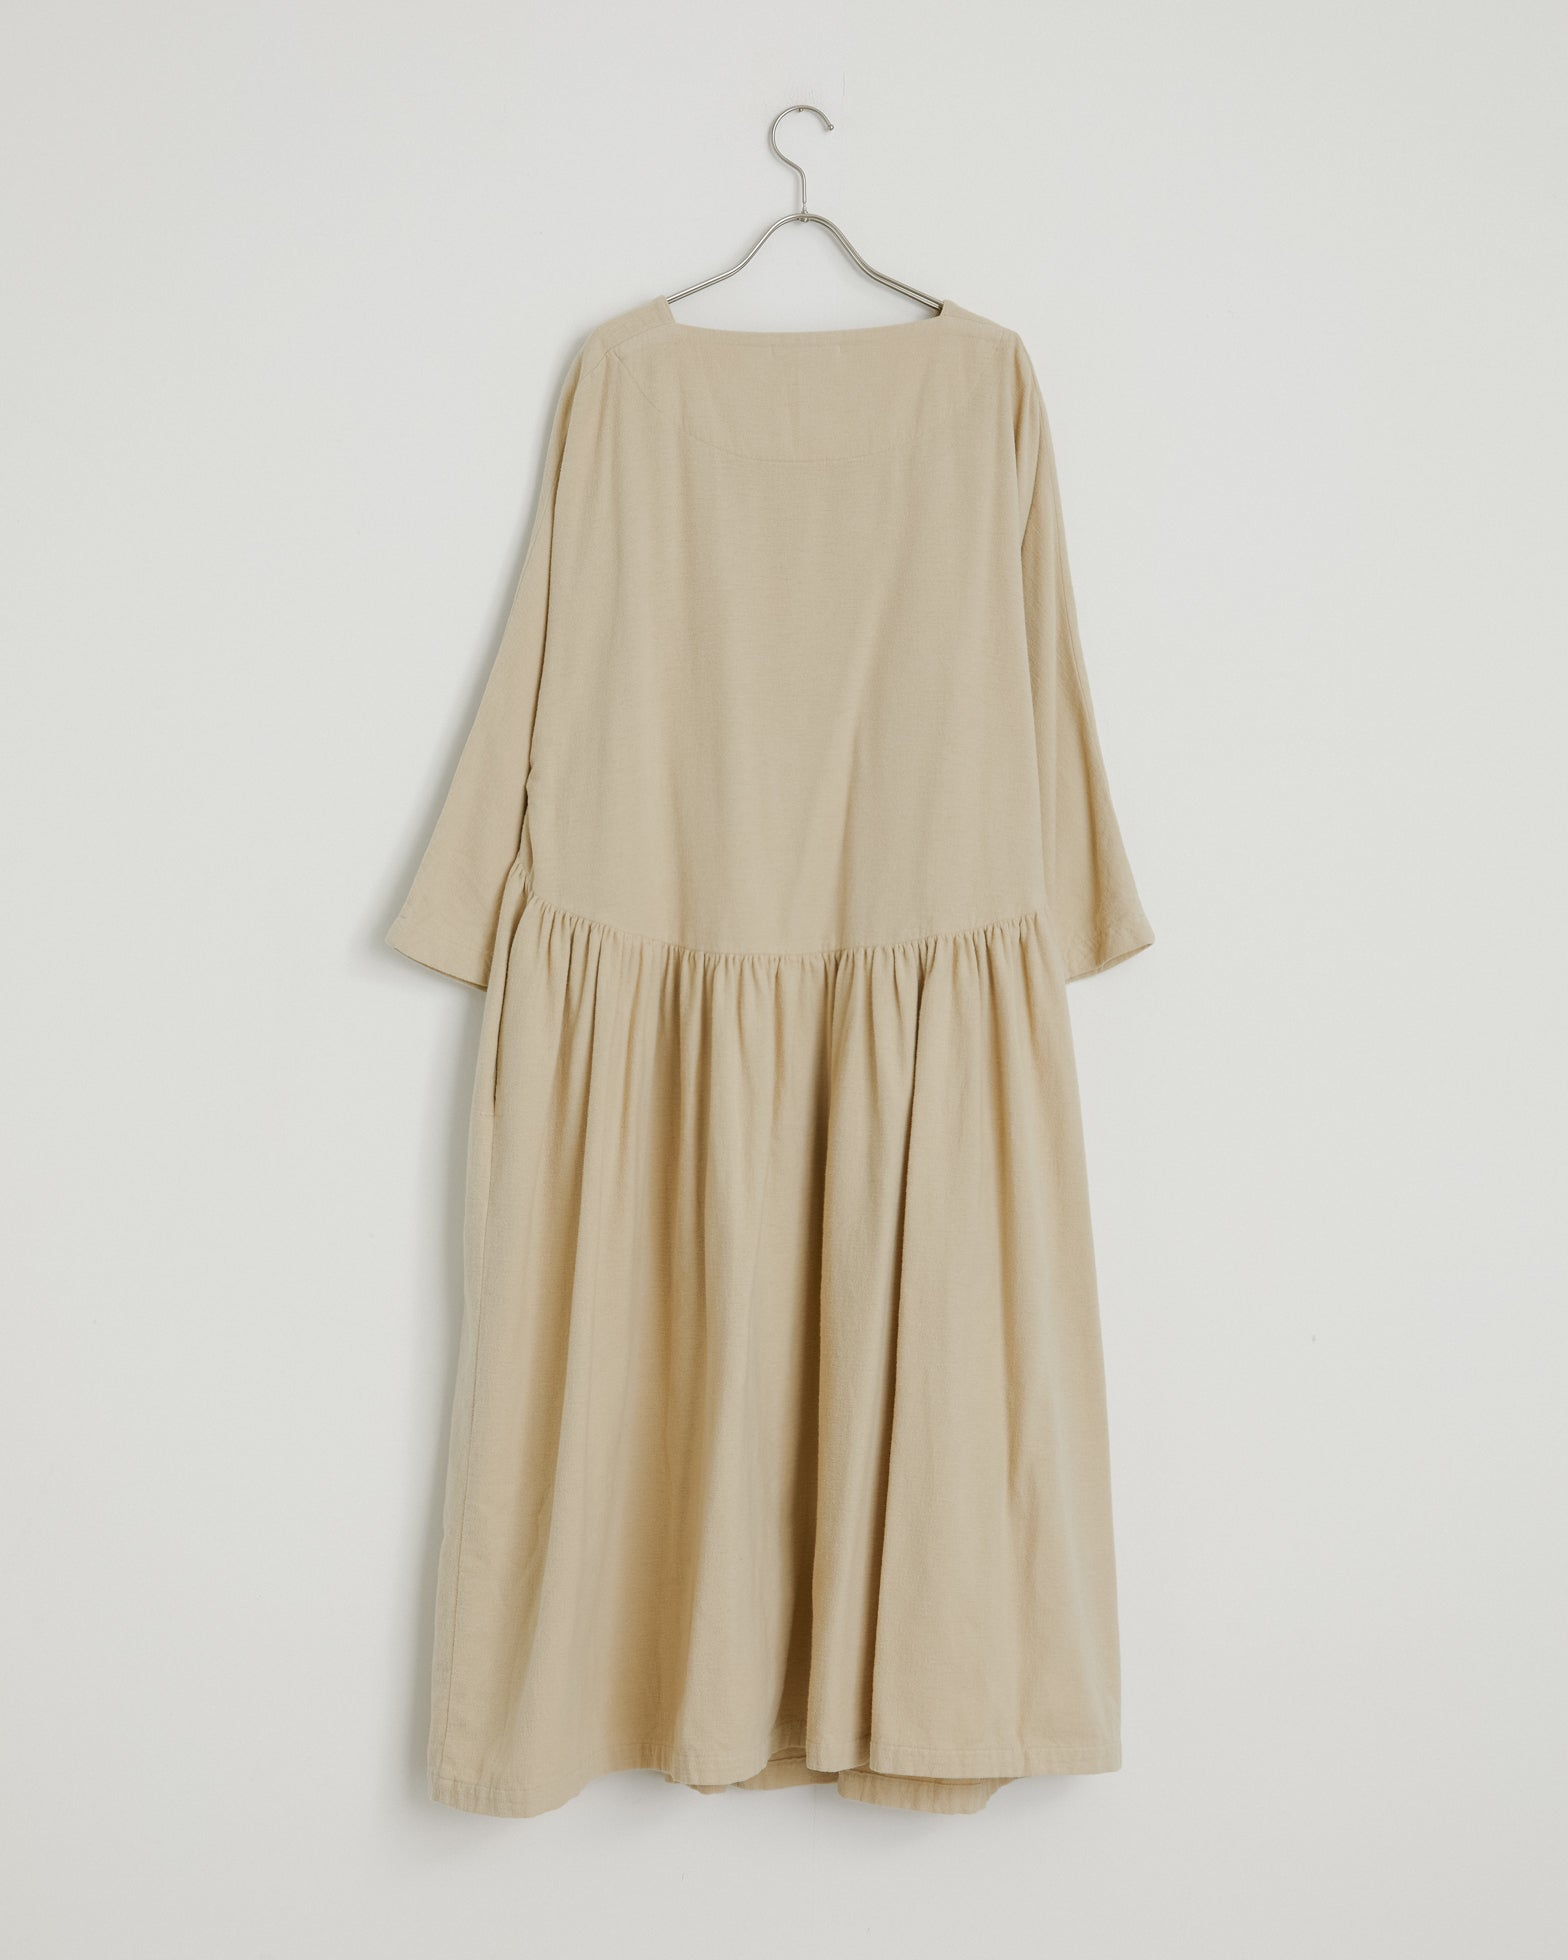 Tradi Dress in Natural